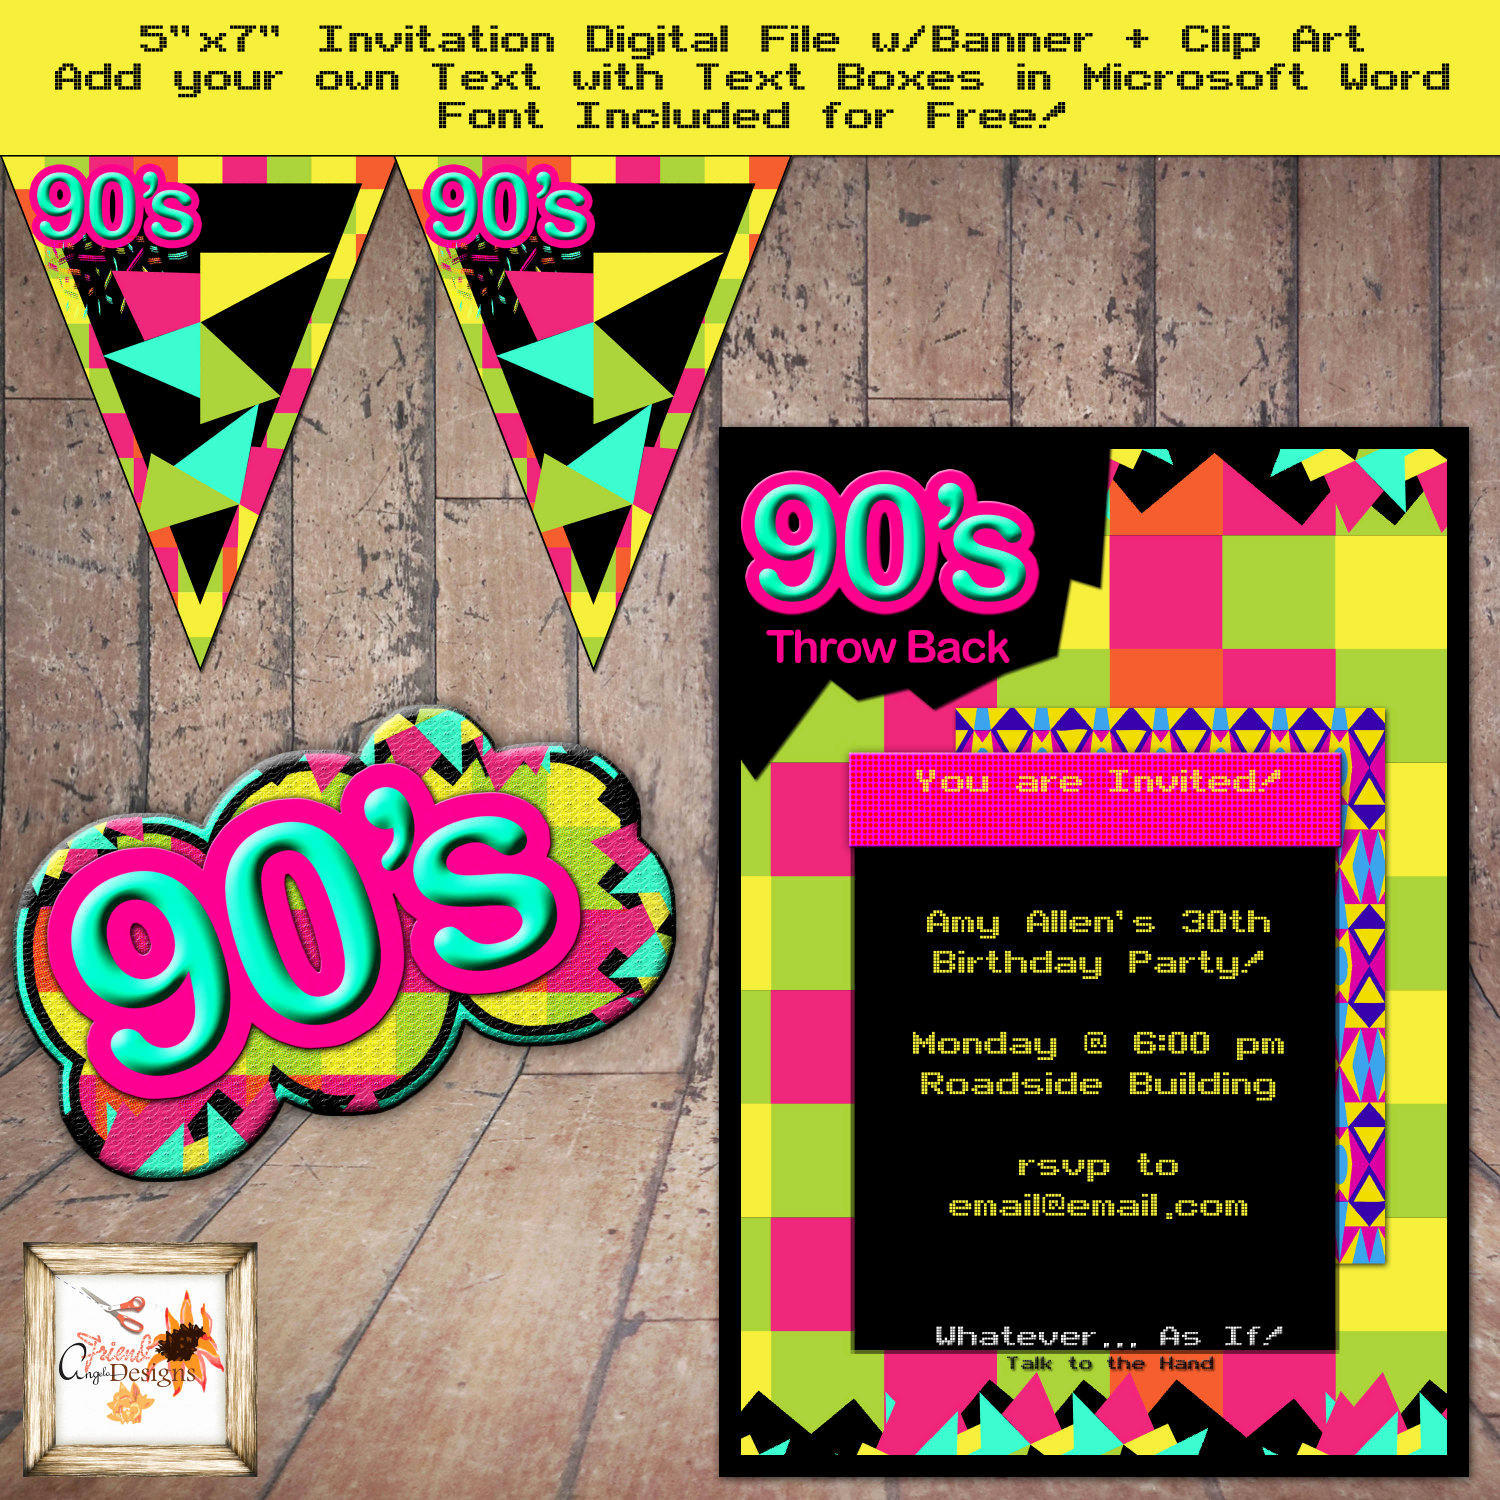 90s theme party throwback 5 x 7